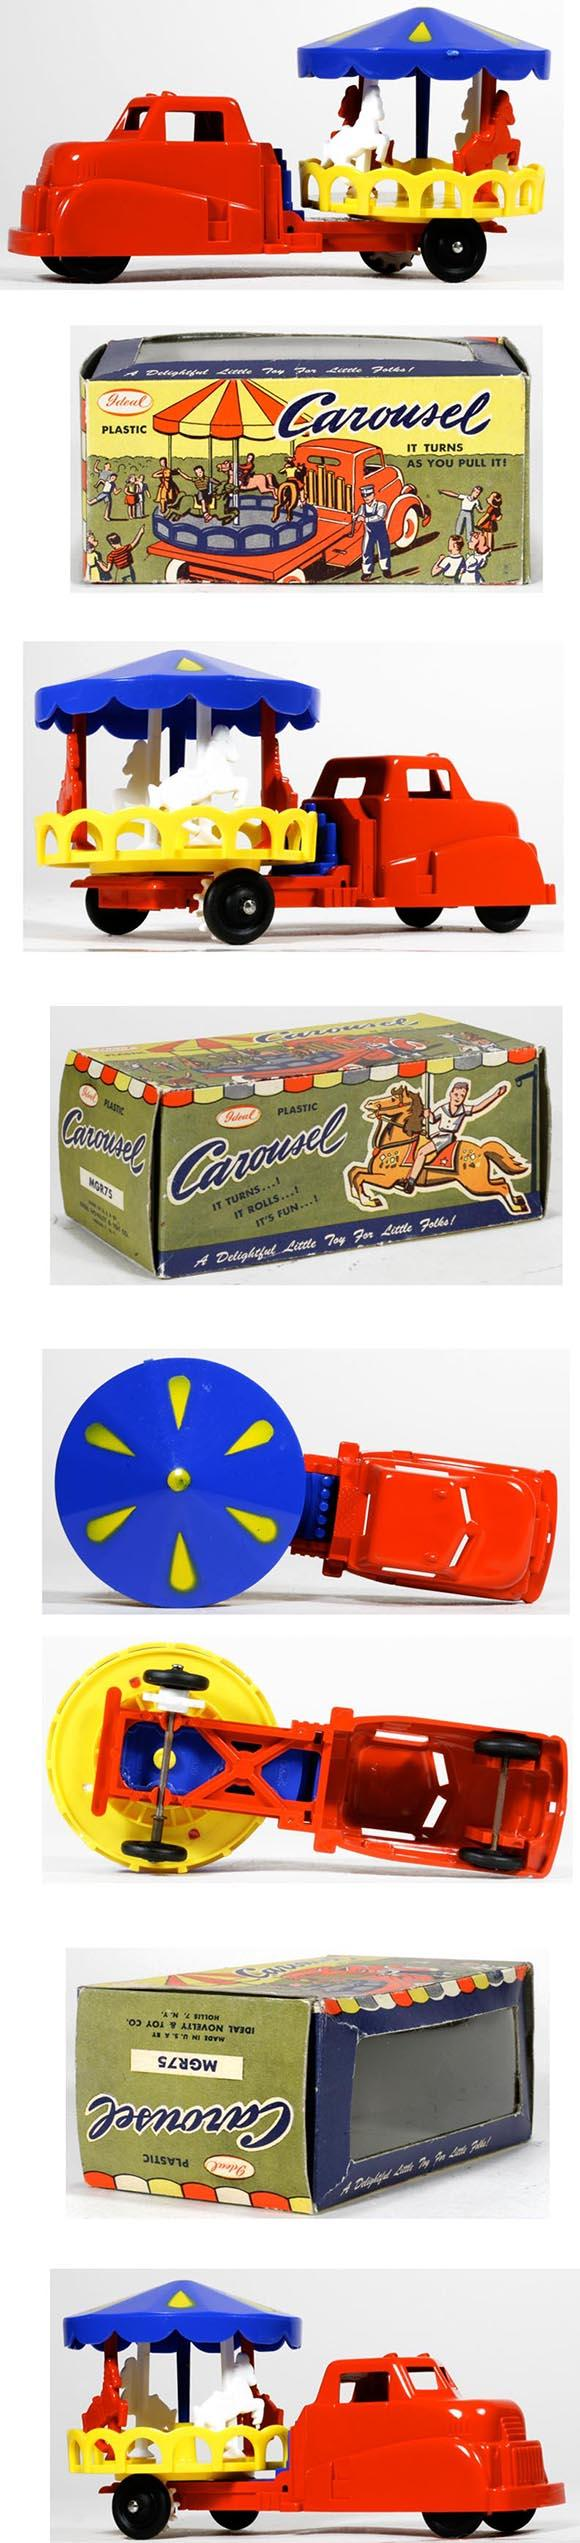 1949 Ideal Novelty & Toy Co., Carousel Truck in Original Box